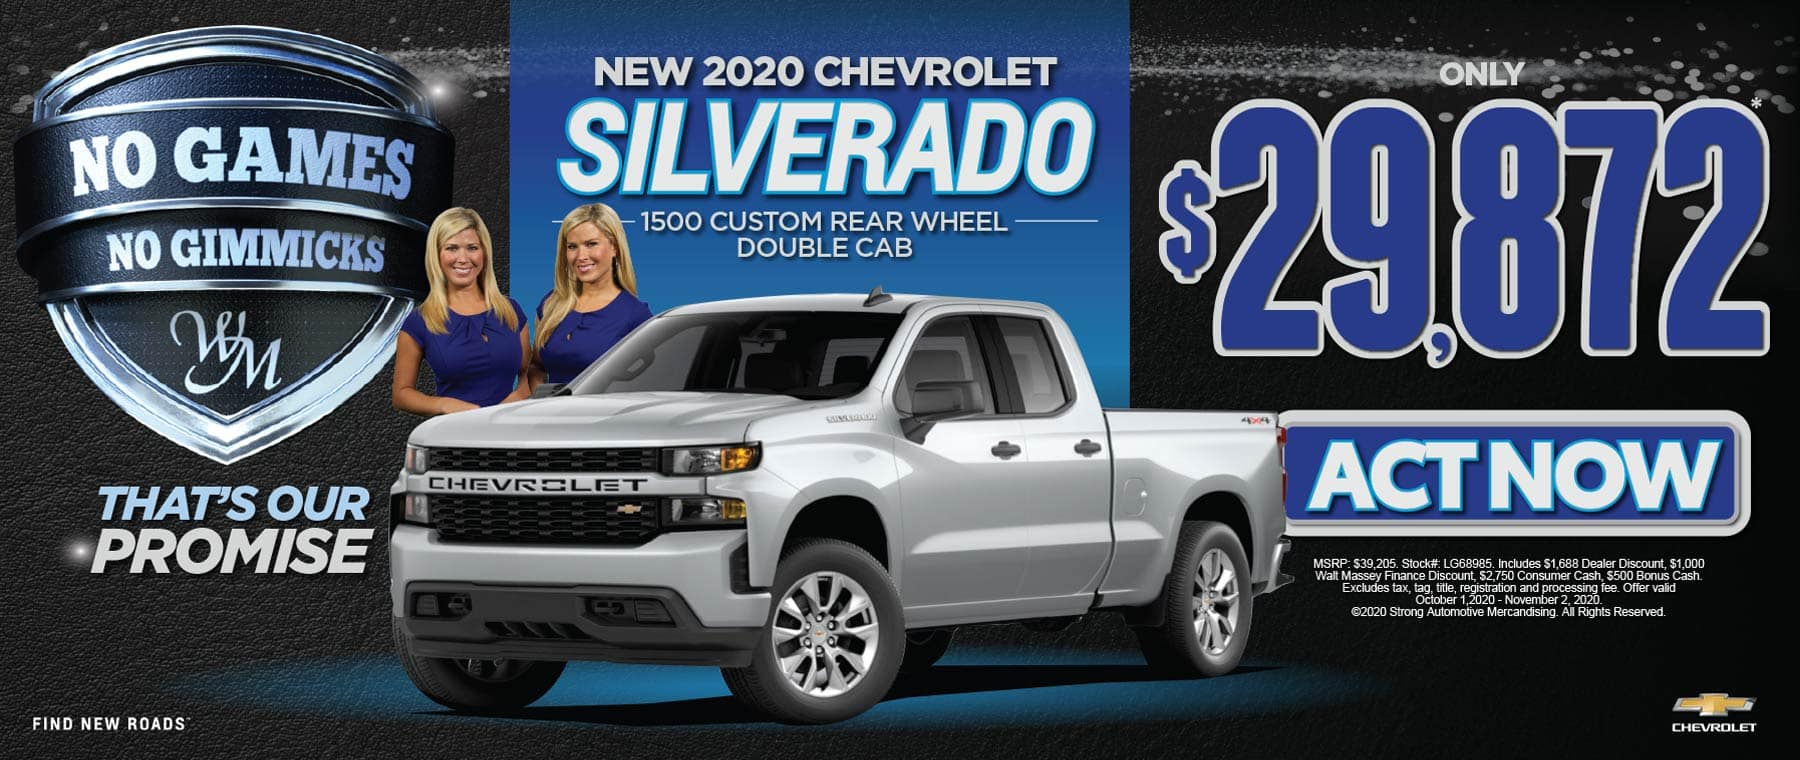 NEW CHEVY SILVERADO FOR $29,872 ACT NOW